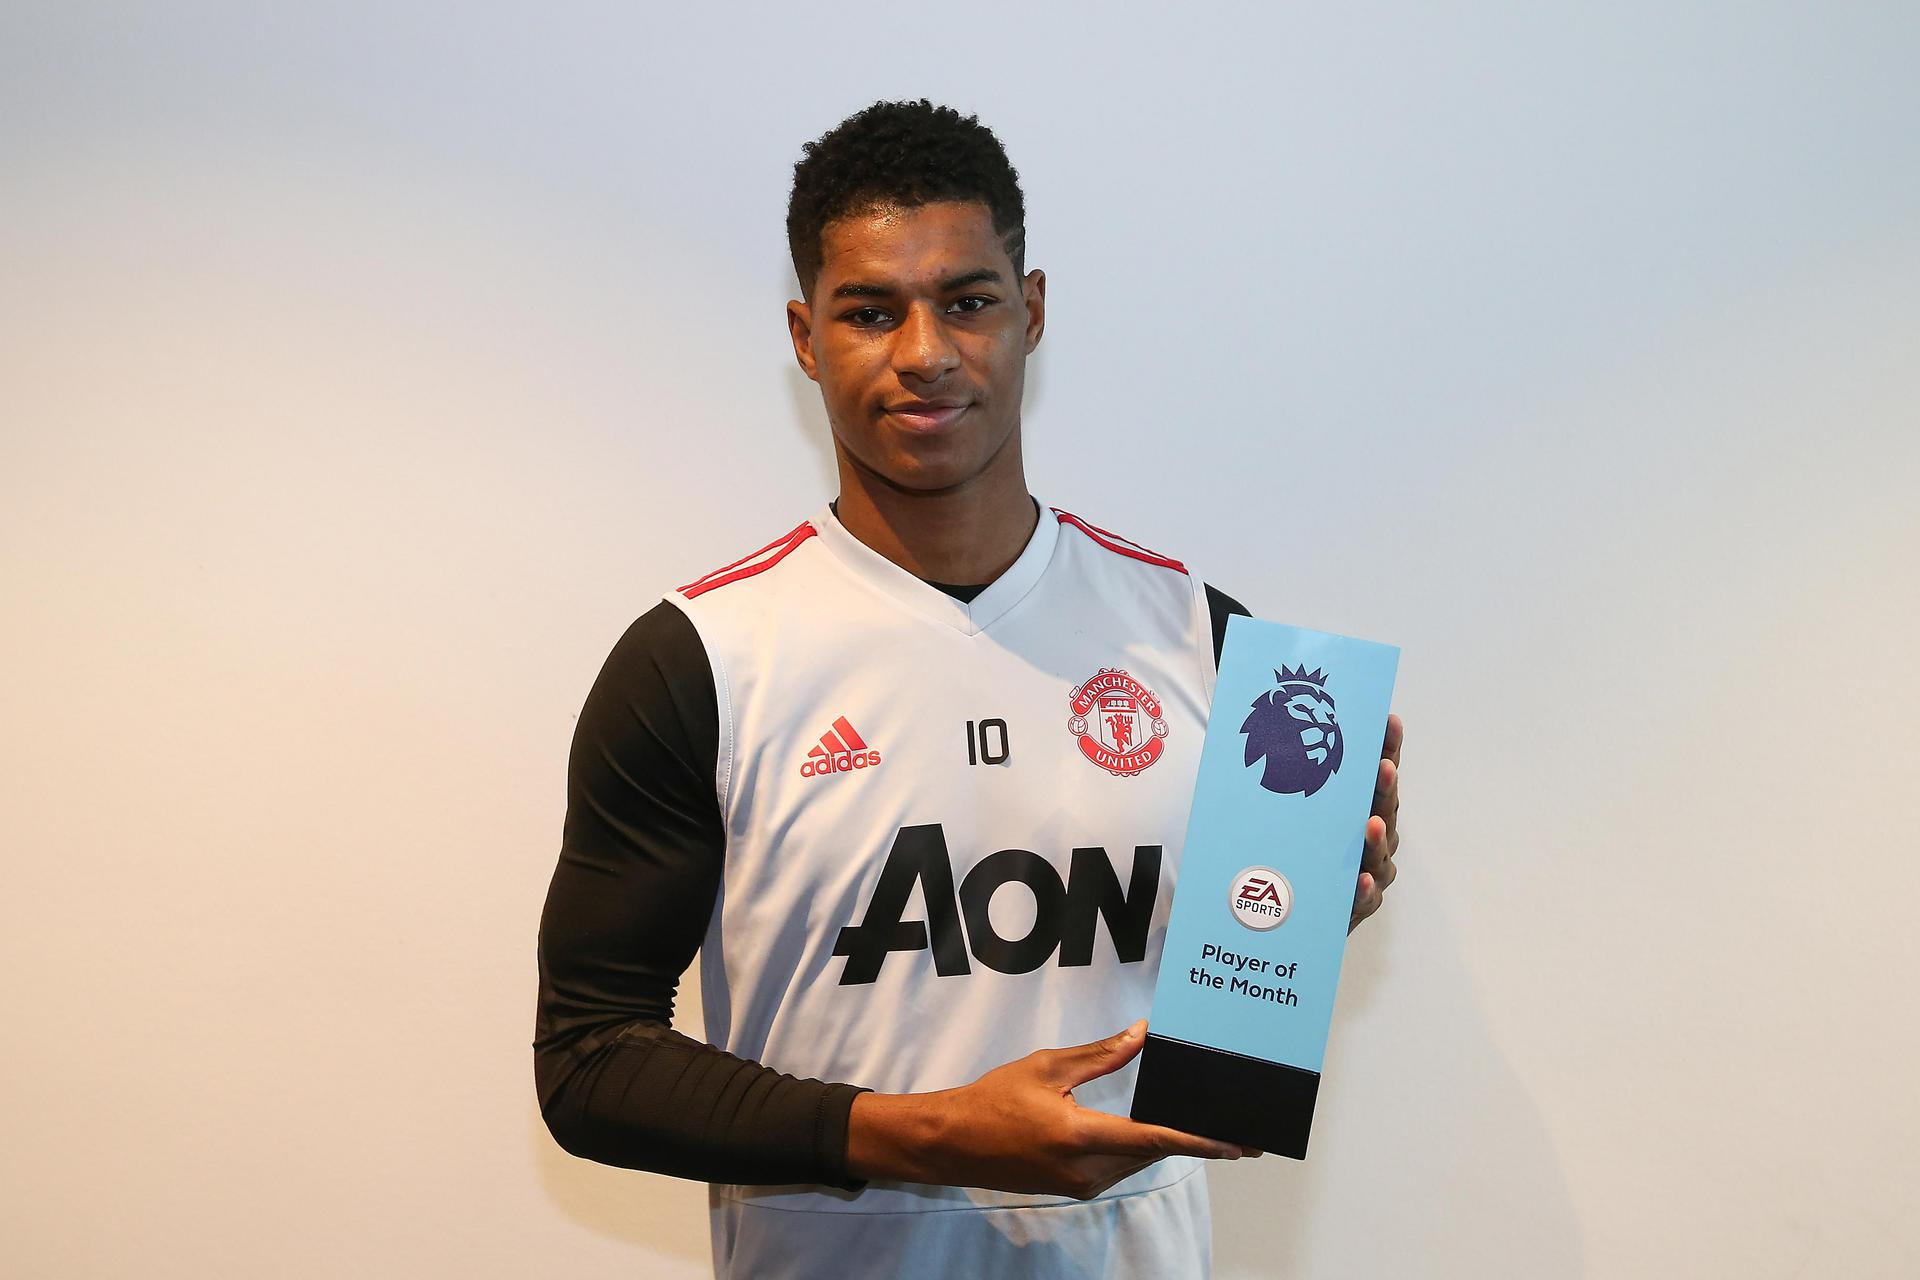 Marcus Rashford with the Premier League Player of the Month award.